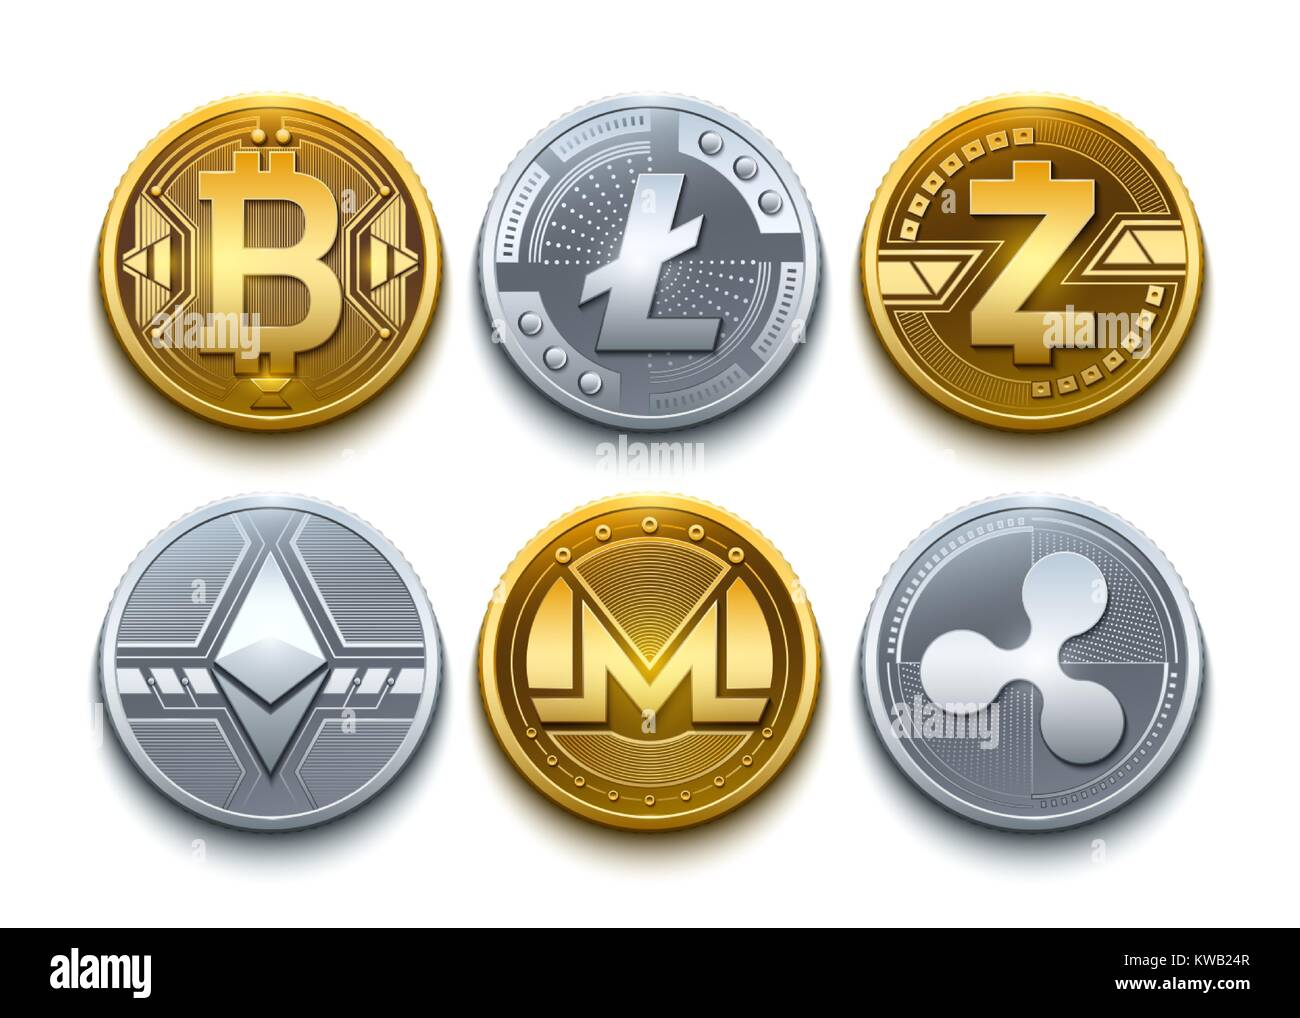 Cryptocurrencies New Age Money Trading Symbol For Ethereum